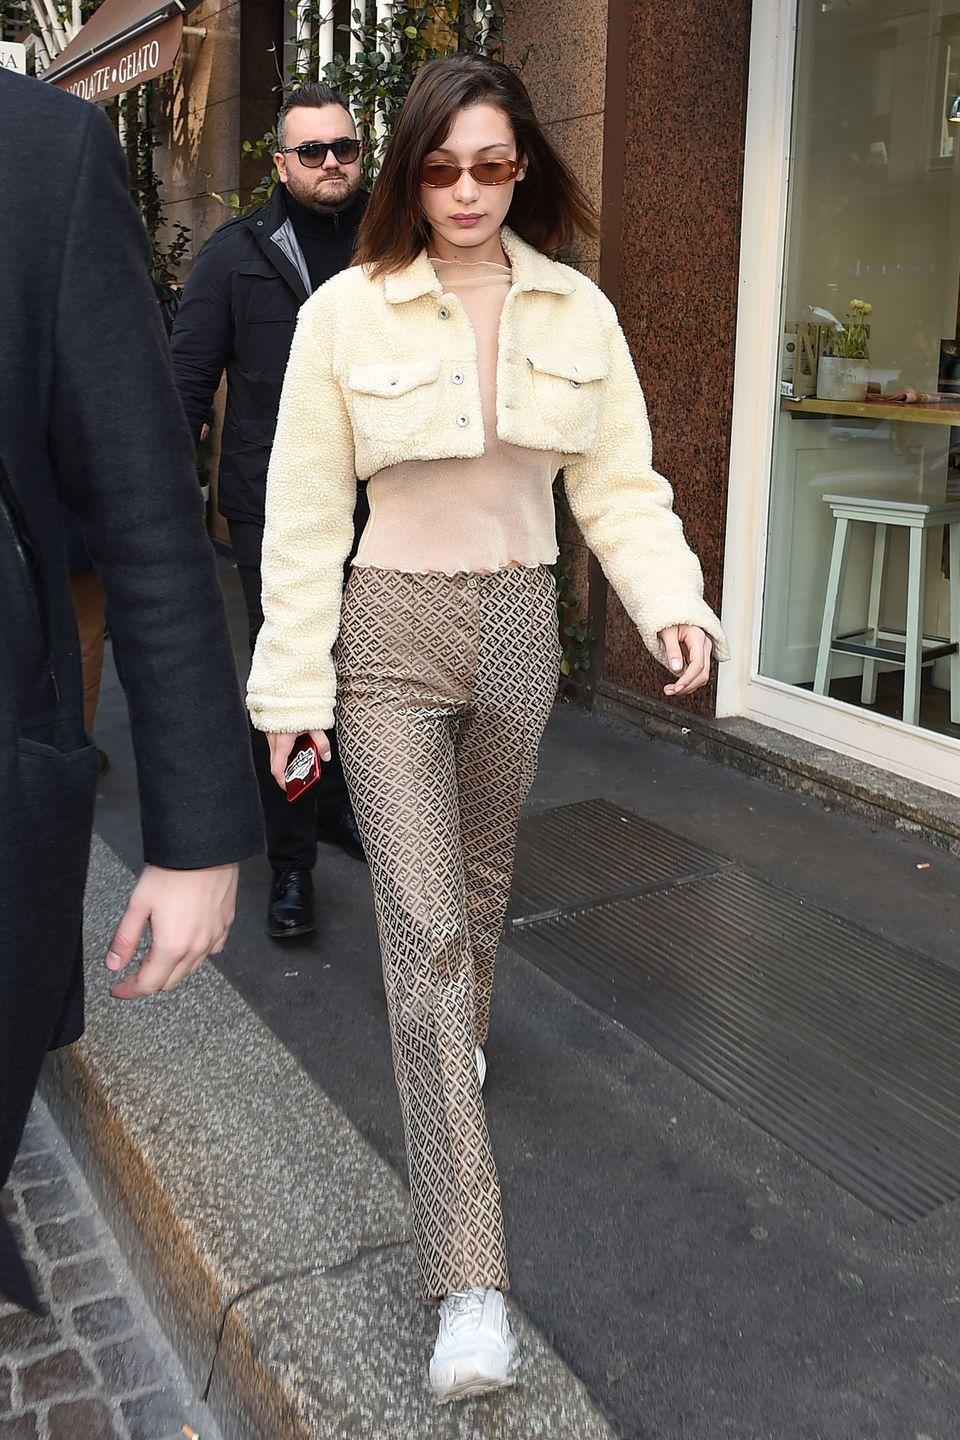 """<p>In Fendi logo-printed pants, a sheer t-shirt under a cropped shearling jacket from the Levi's Made & Crafted x Off-White collection, styled with chunky white sneakers and <a href=""""https://www.shopbop.com/specs/br/v=1/37342.htm?all"""" rel=""""nofollow noopener"""" target=""""_blank"""" data-ylk=""""slk:Le Specs"""" class=""""link rapid-noclick-resp"""">Le Specs</a> sunglasses while out in Milan.</p>"""